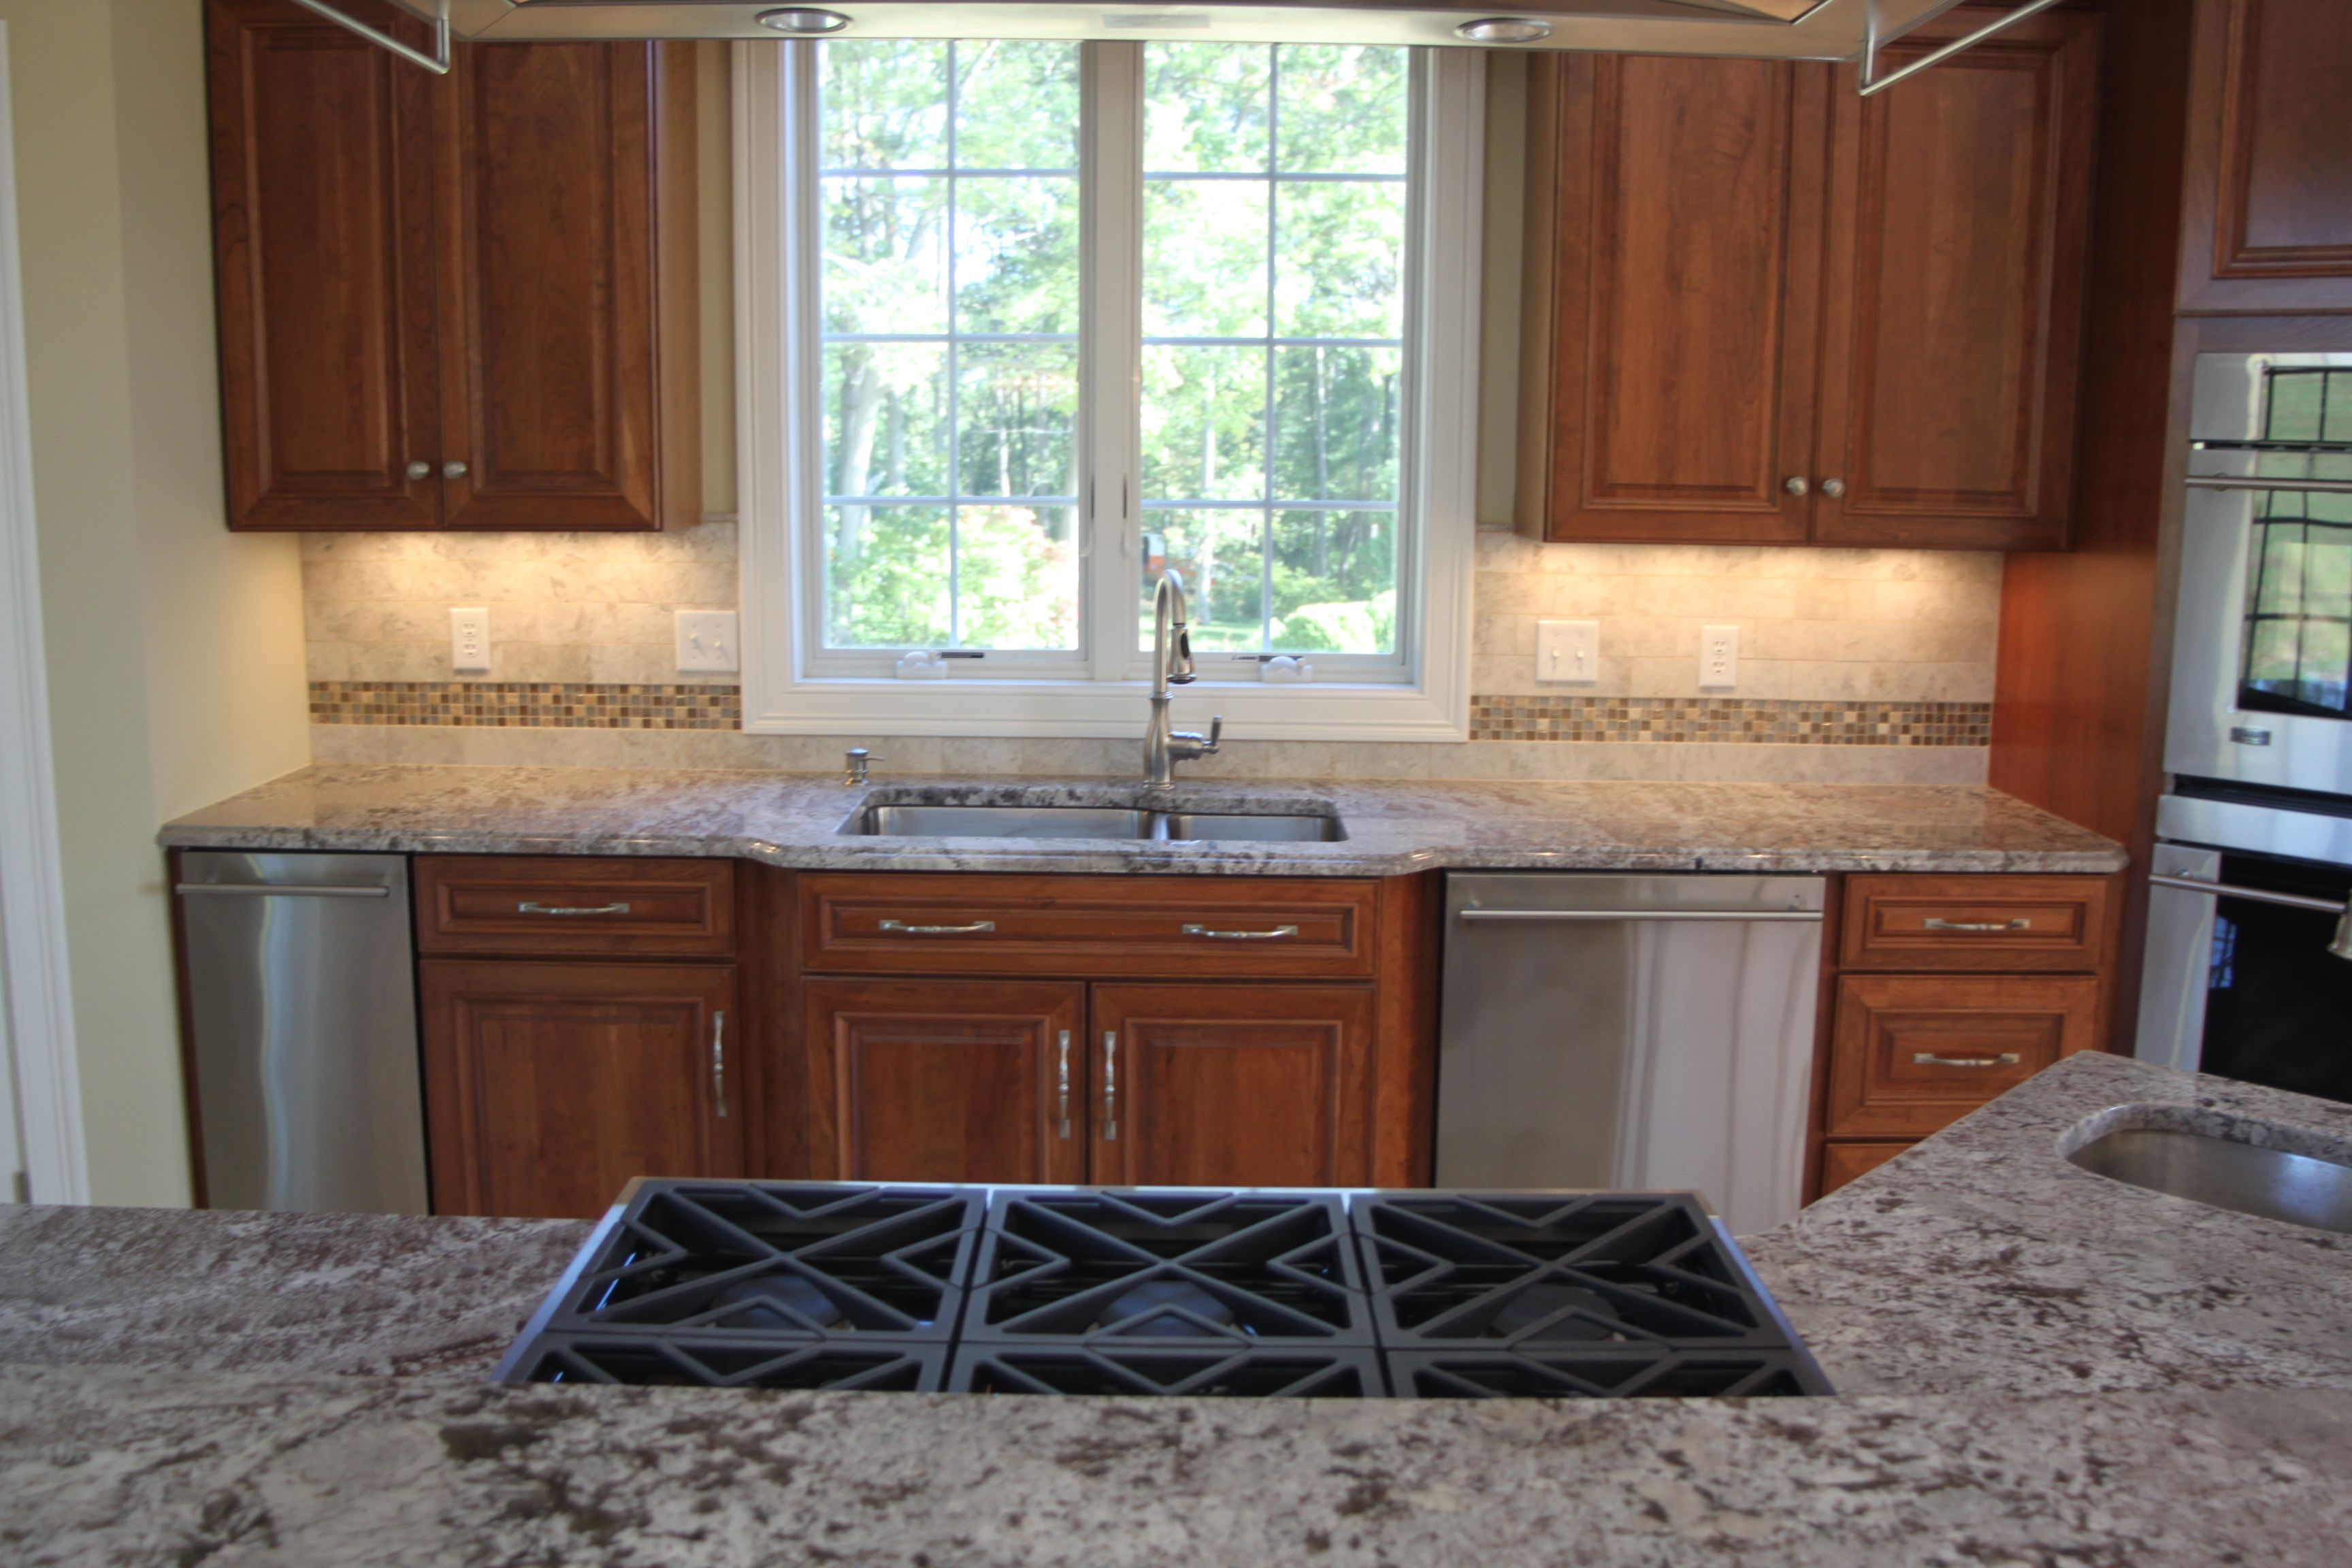 Matching Kitchen Flooring And Countertops   Flooring Ideas in 9 ...